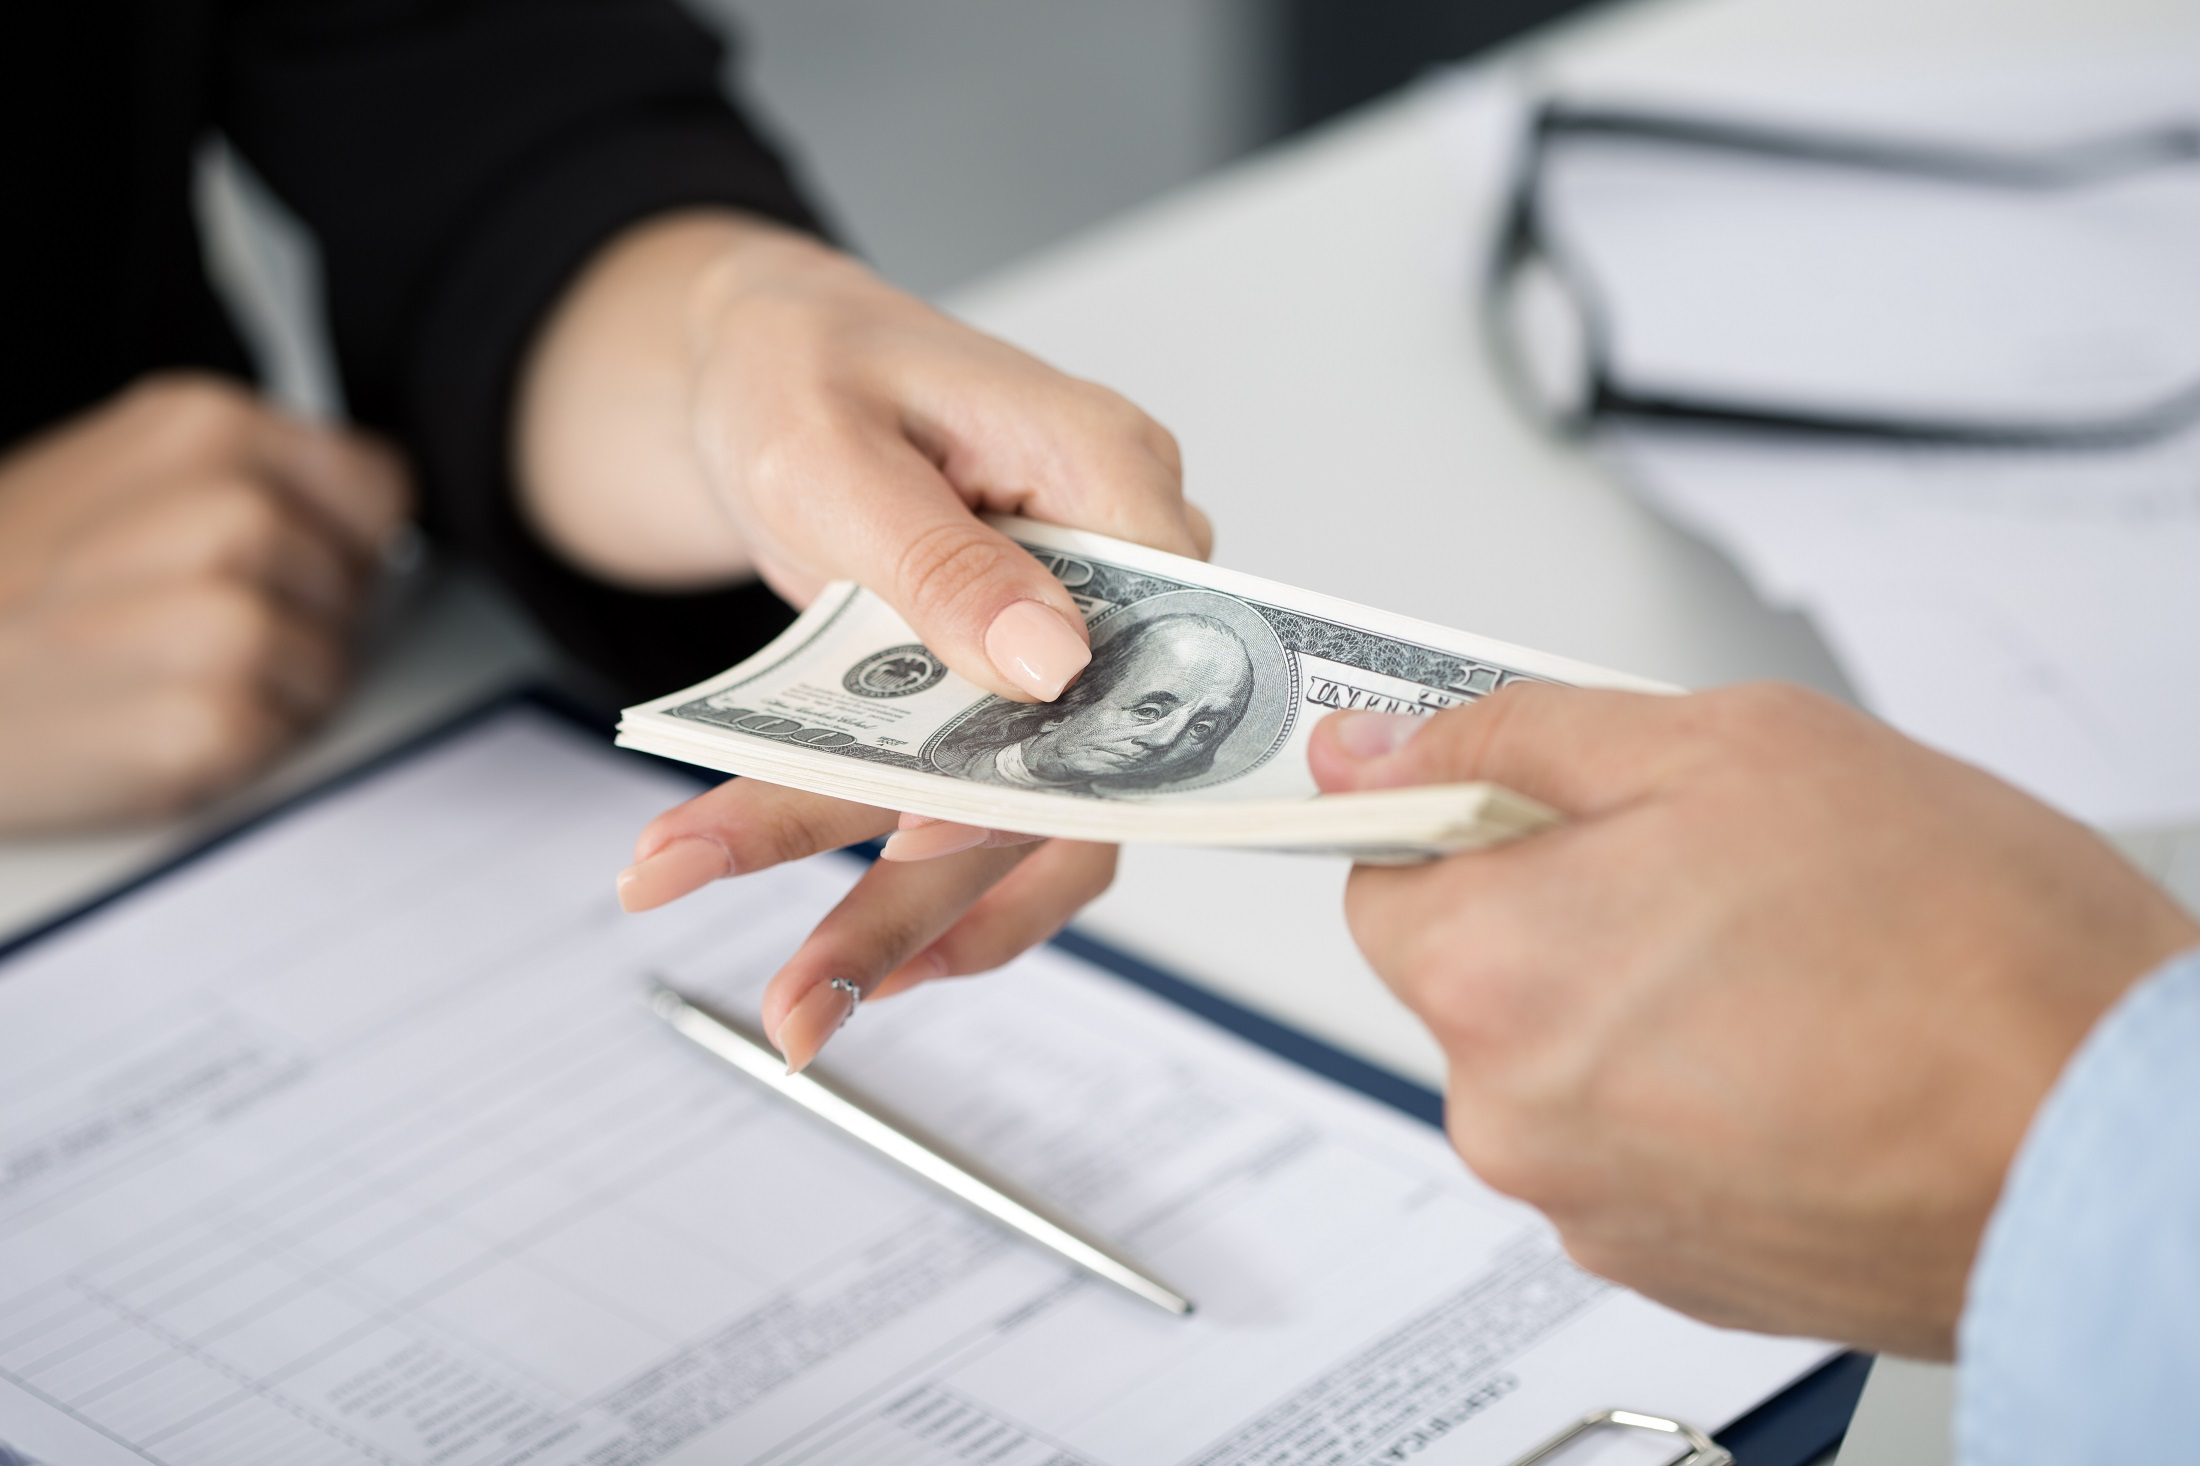 6 Ways to Improve Your Credit Score Through A Personal Loan